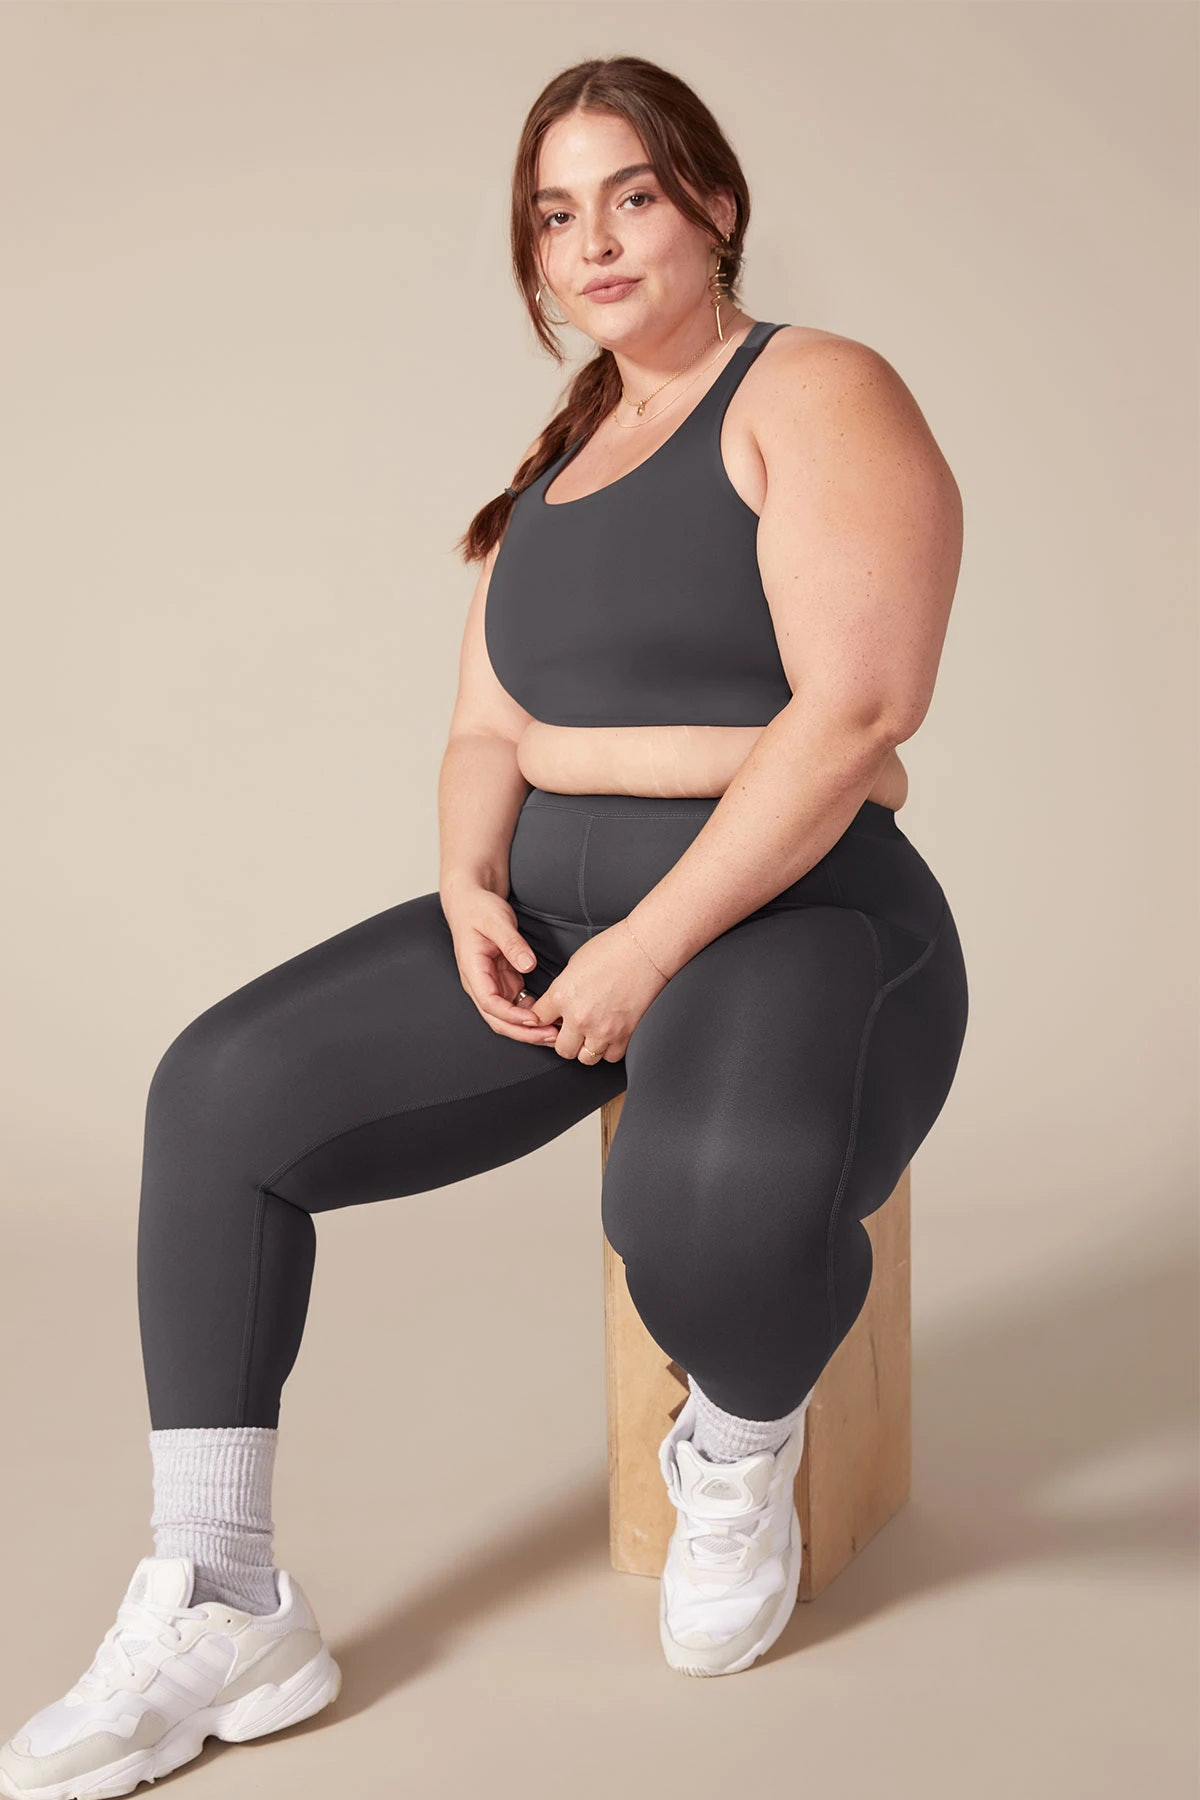 We Went On A Quest To Find Non See Through Workout Leggings Here S What We Discovered Find great deals on ebay for fake see through leggings. non see through workout leggings